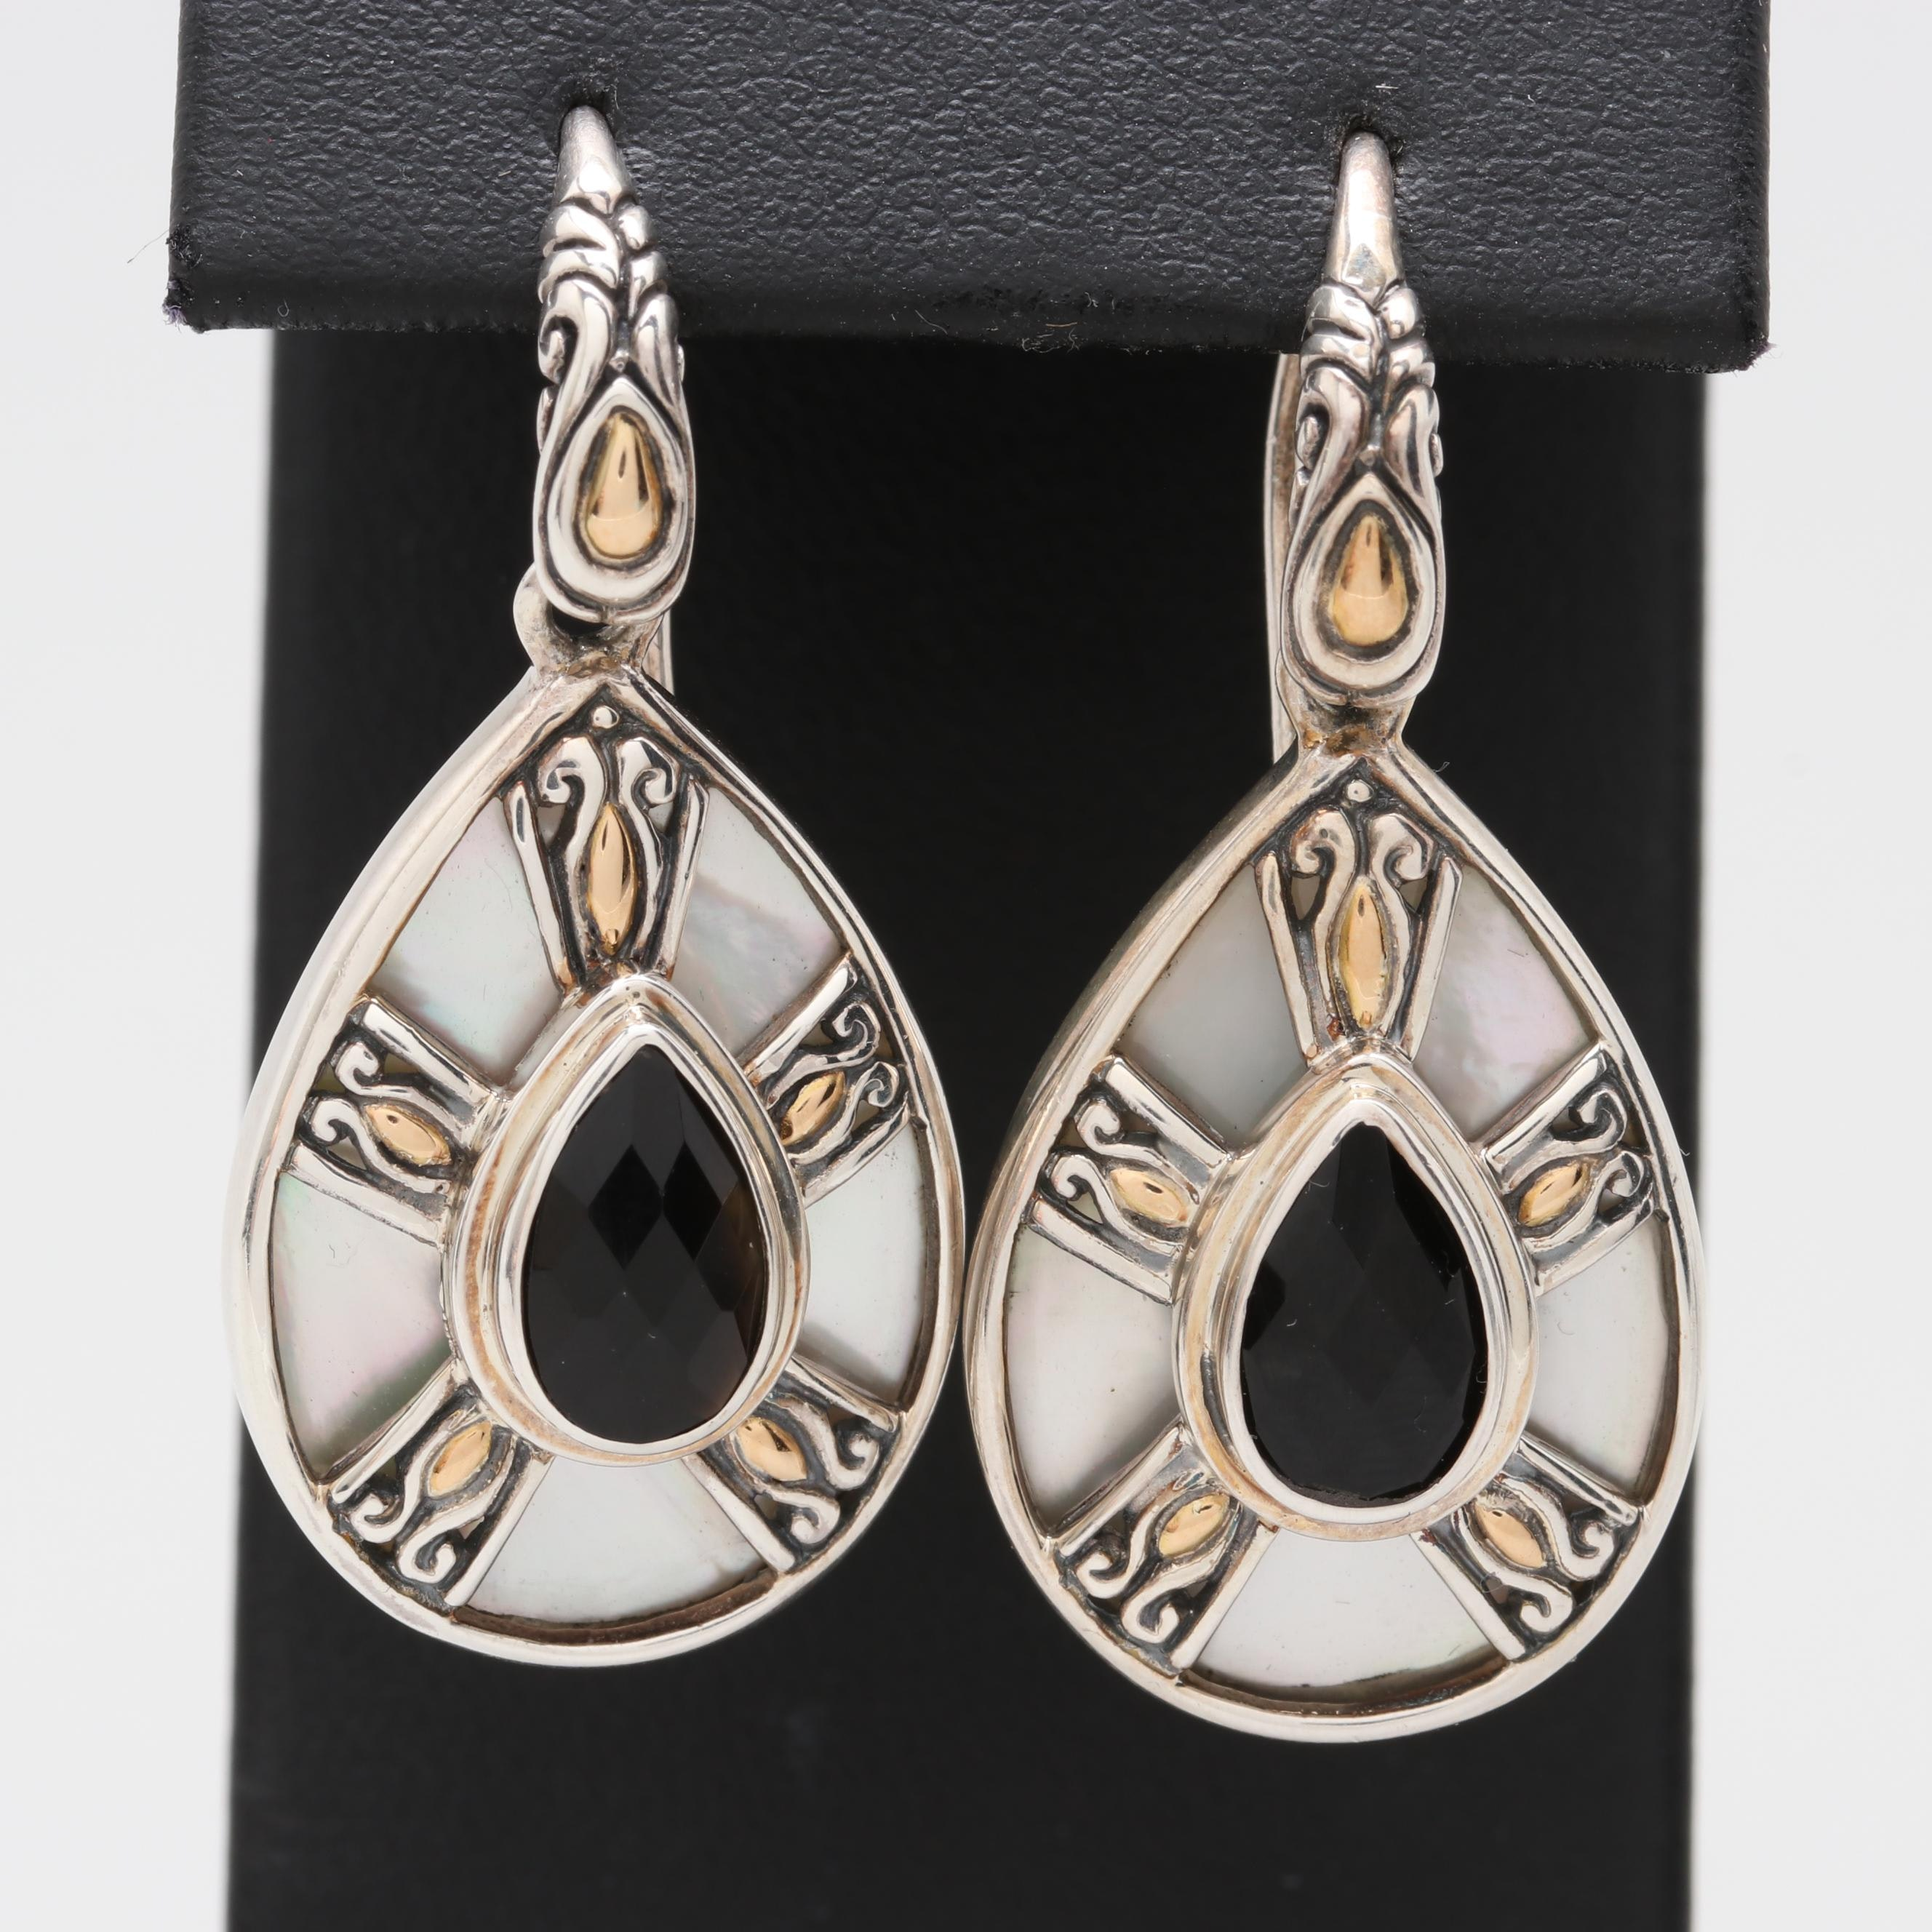 Robert Manse Sterling Black Onyx and Mother of Pearl Earrings with 18K Accents